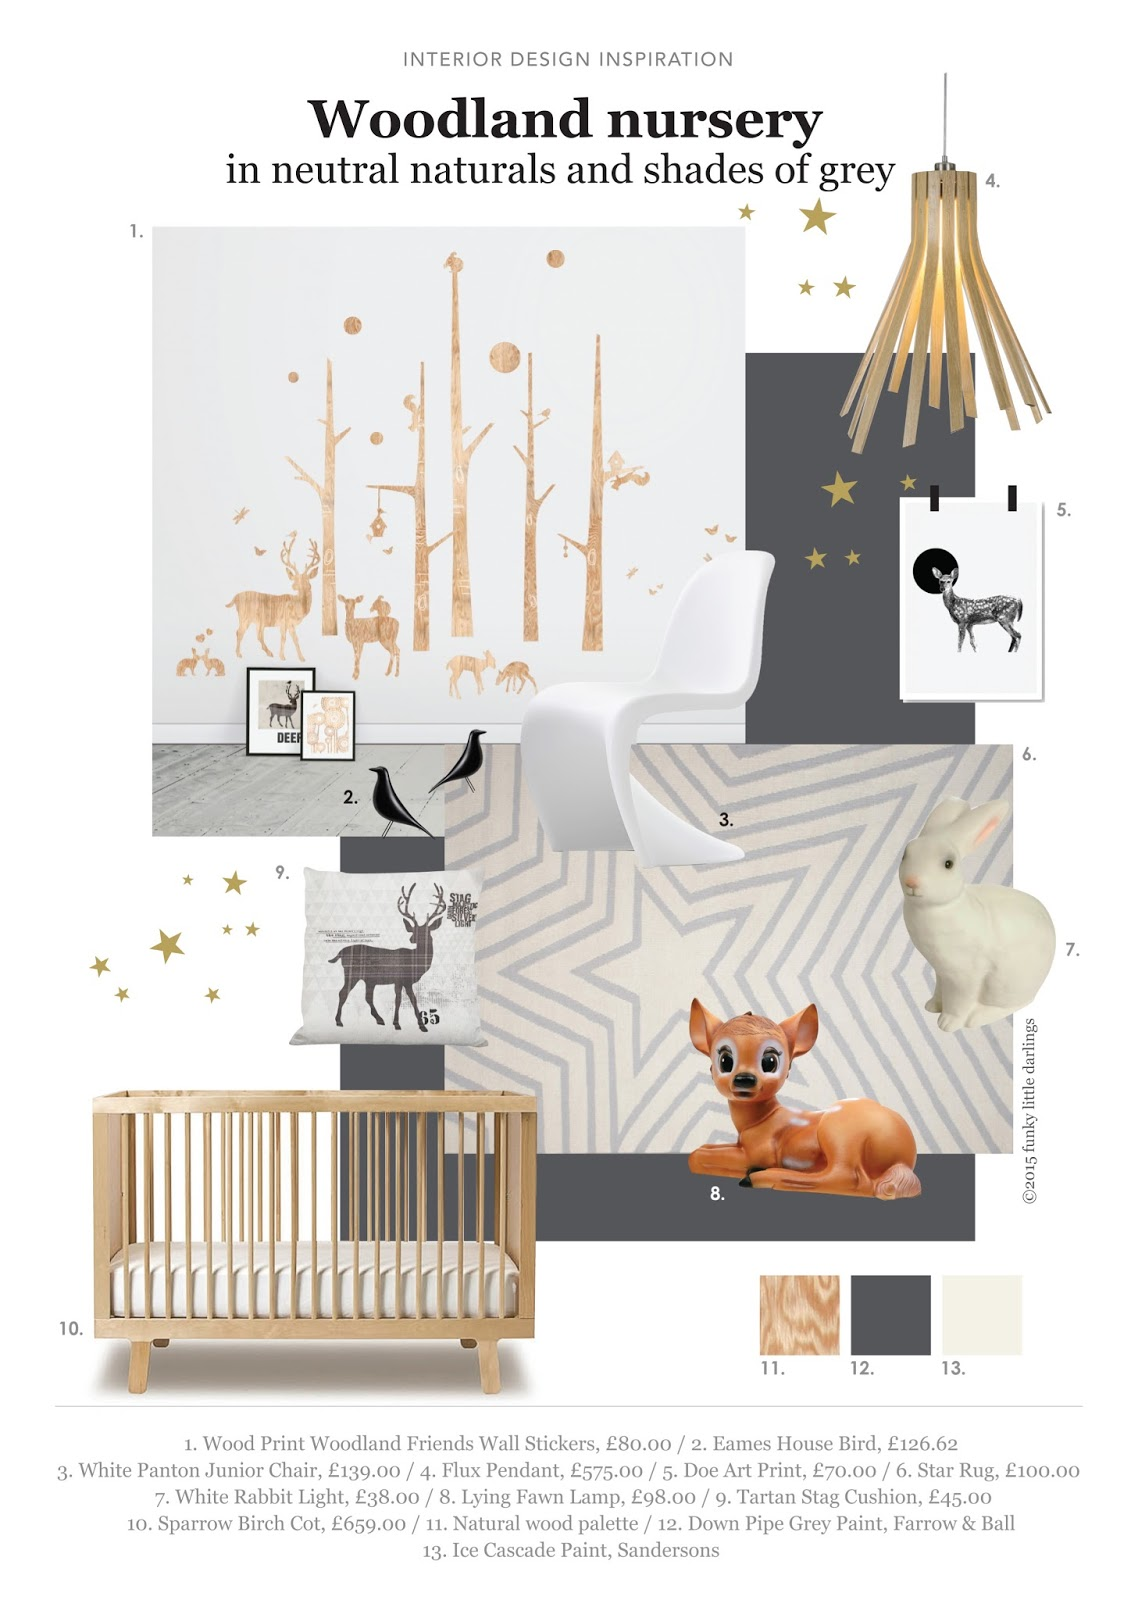 Woodland Themed Nursery With Neutrals And Shades Of Grey Mood Board